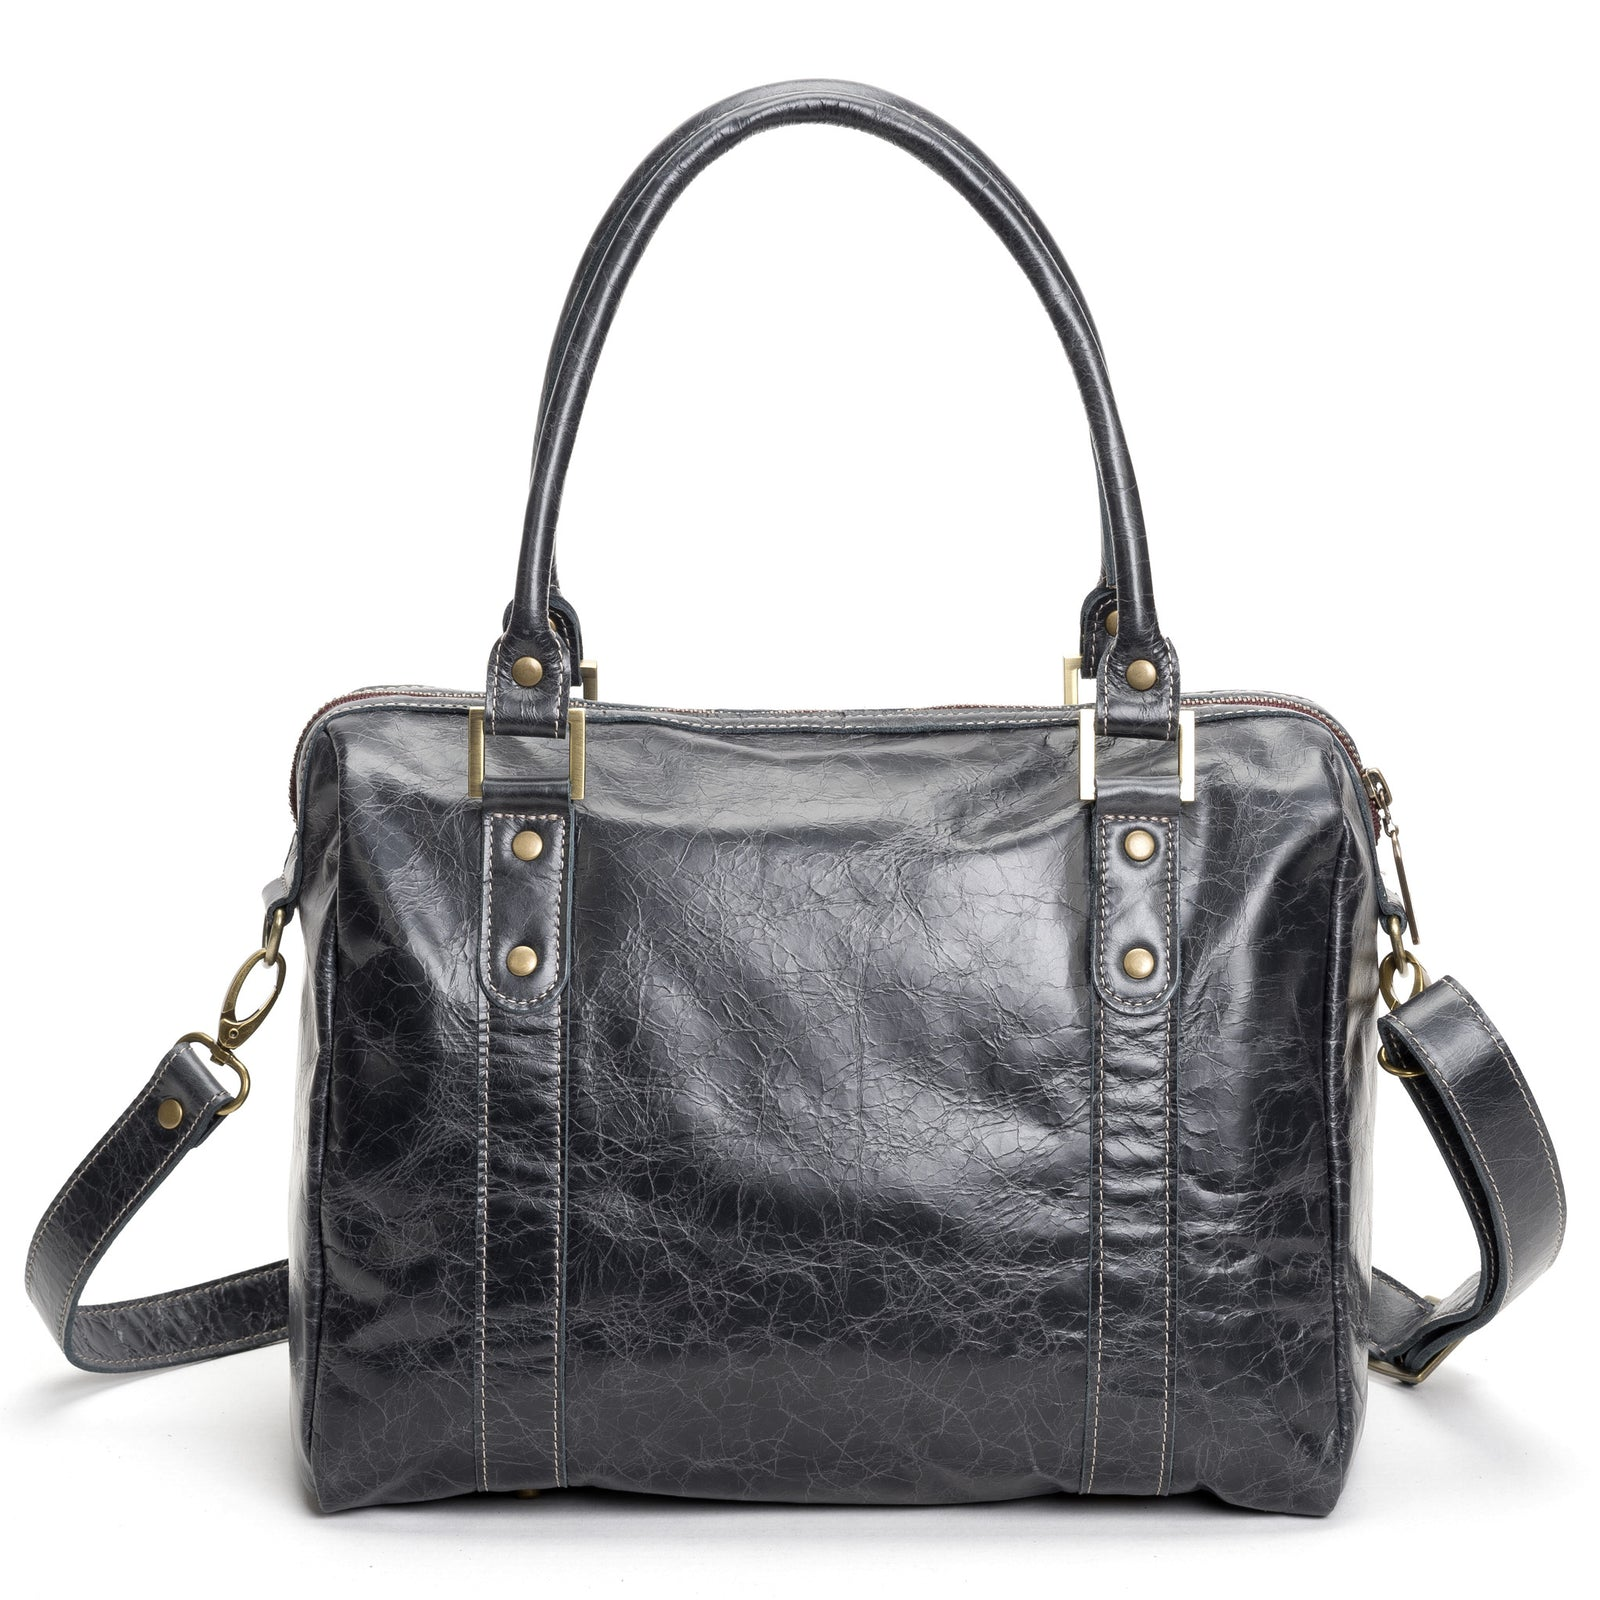 Angi Satchel - Panther - Brynn Capella, Satchel